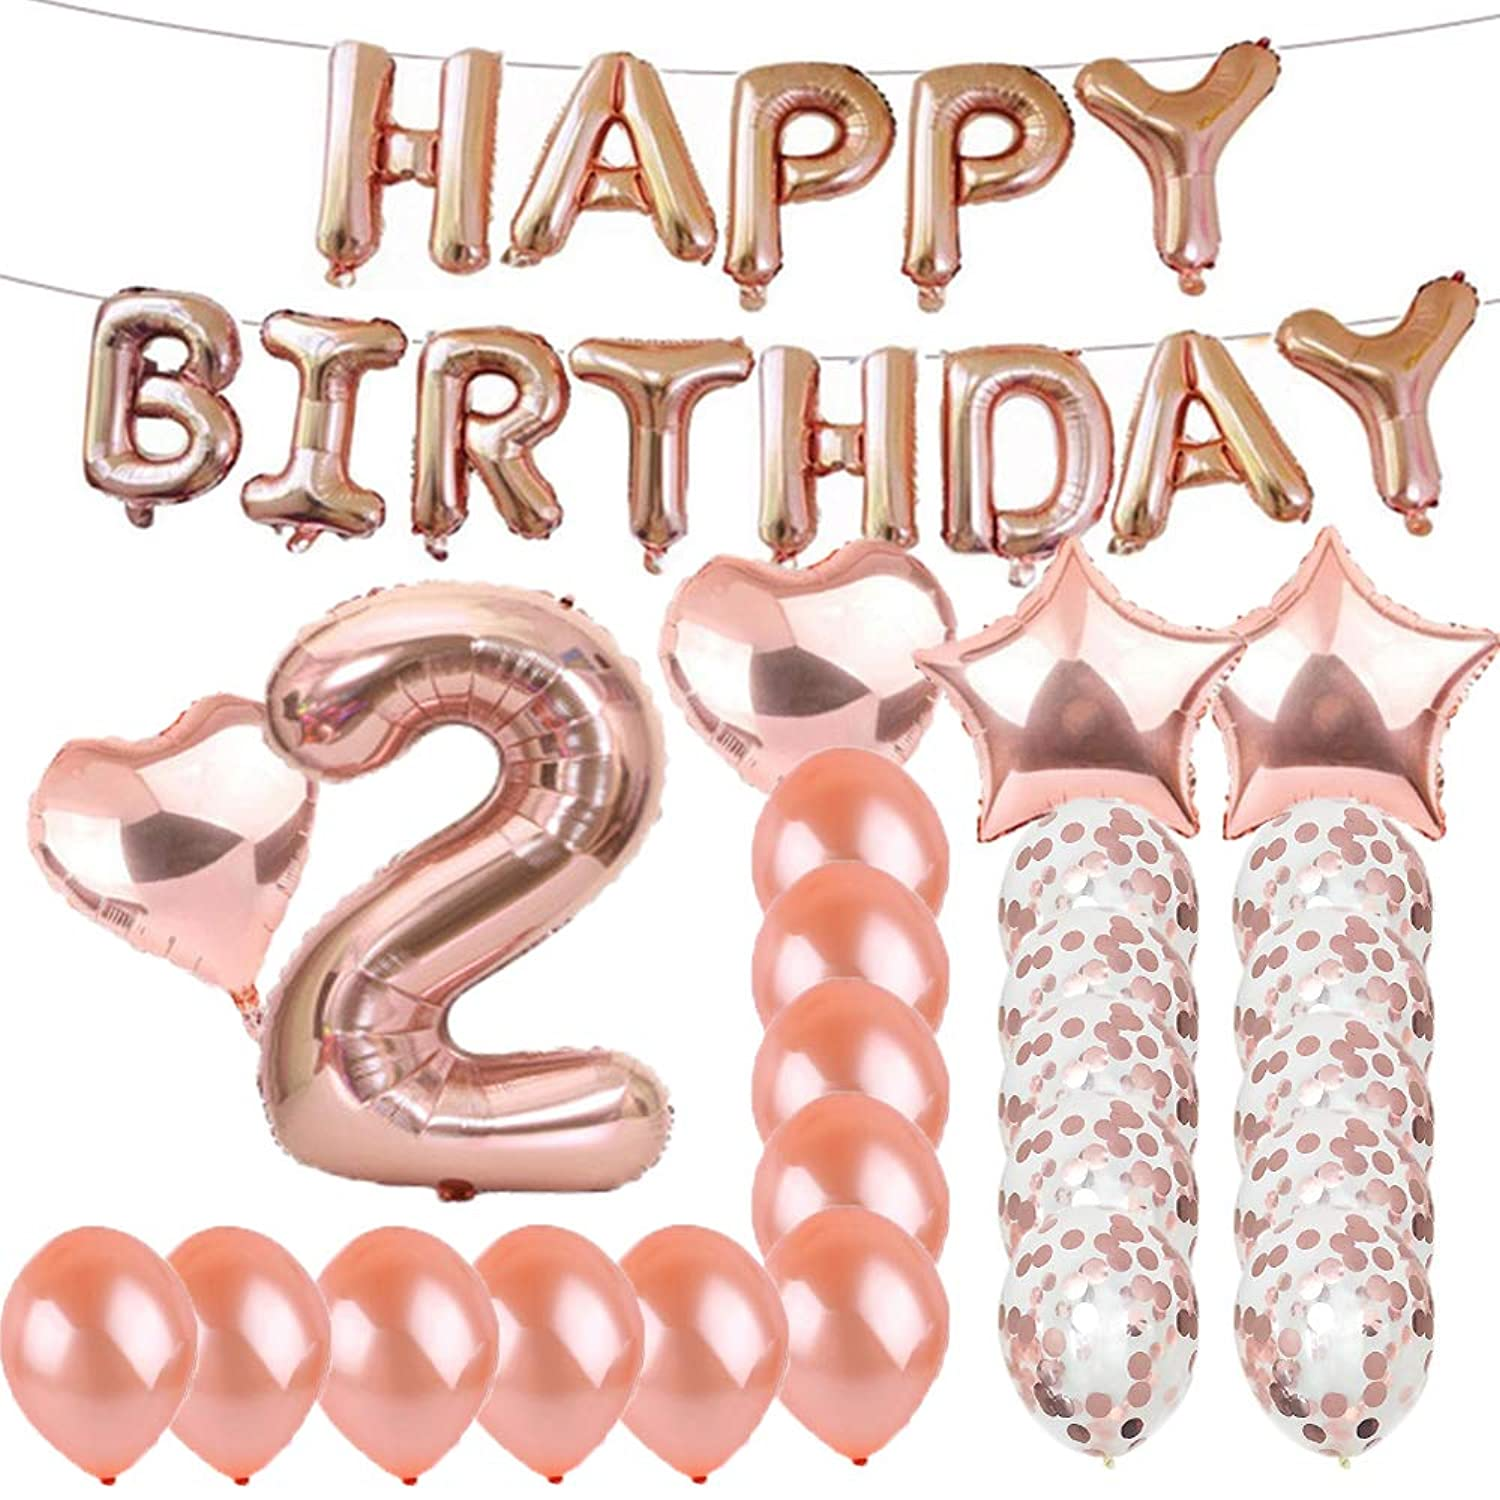 Sweet 2th Birthday Decorations Party Supplies,Rose Gold Number 2 Balloons,2th Foil Mylar Balloons Latex Balloon Decoration,Great 2th Birthday Gifts for Girls,Women,Men,Photo Props